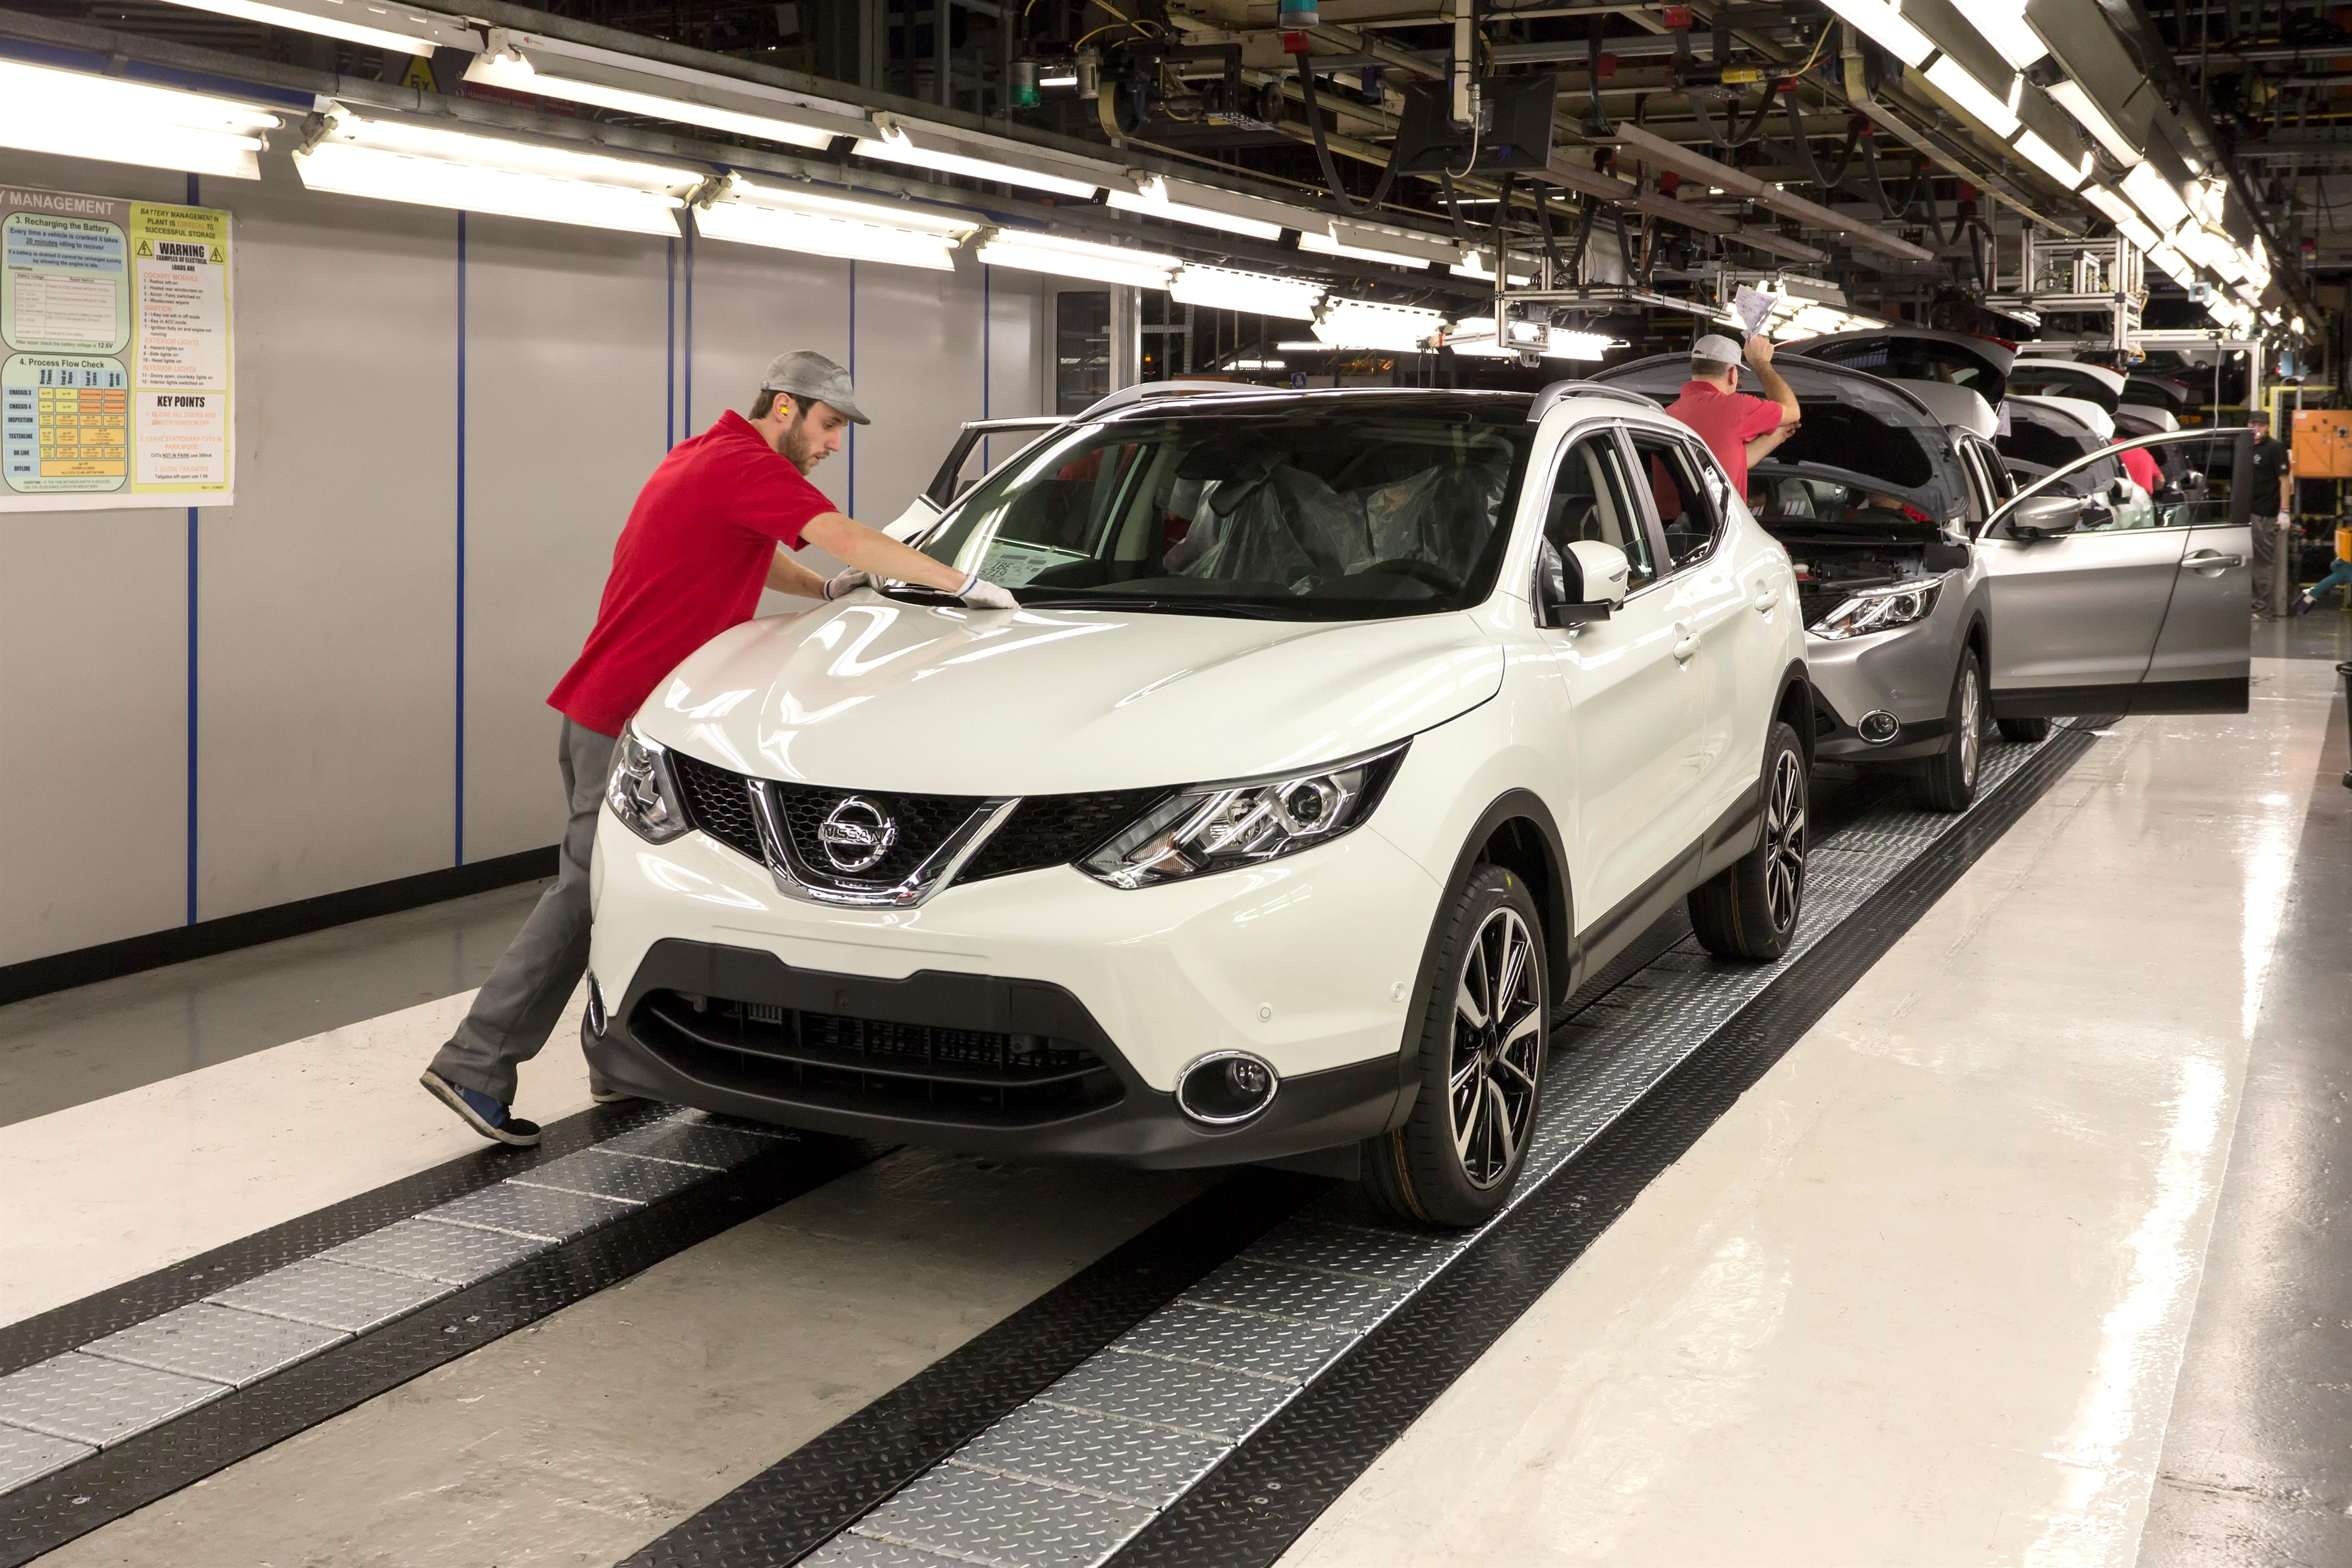 On the production line the new nissan qashqai